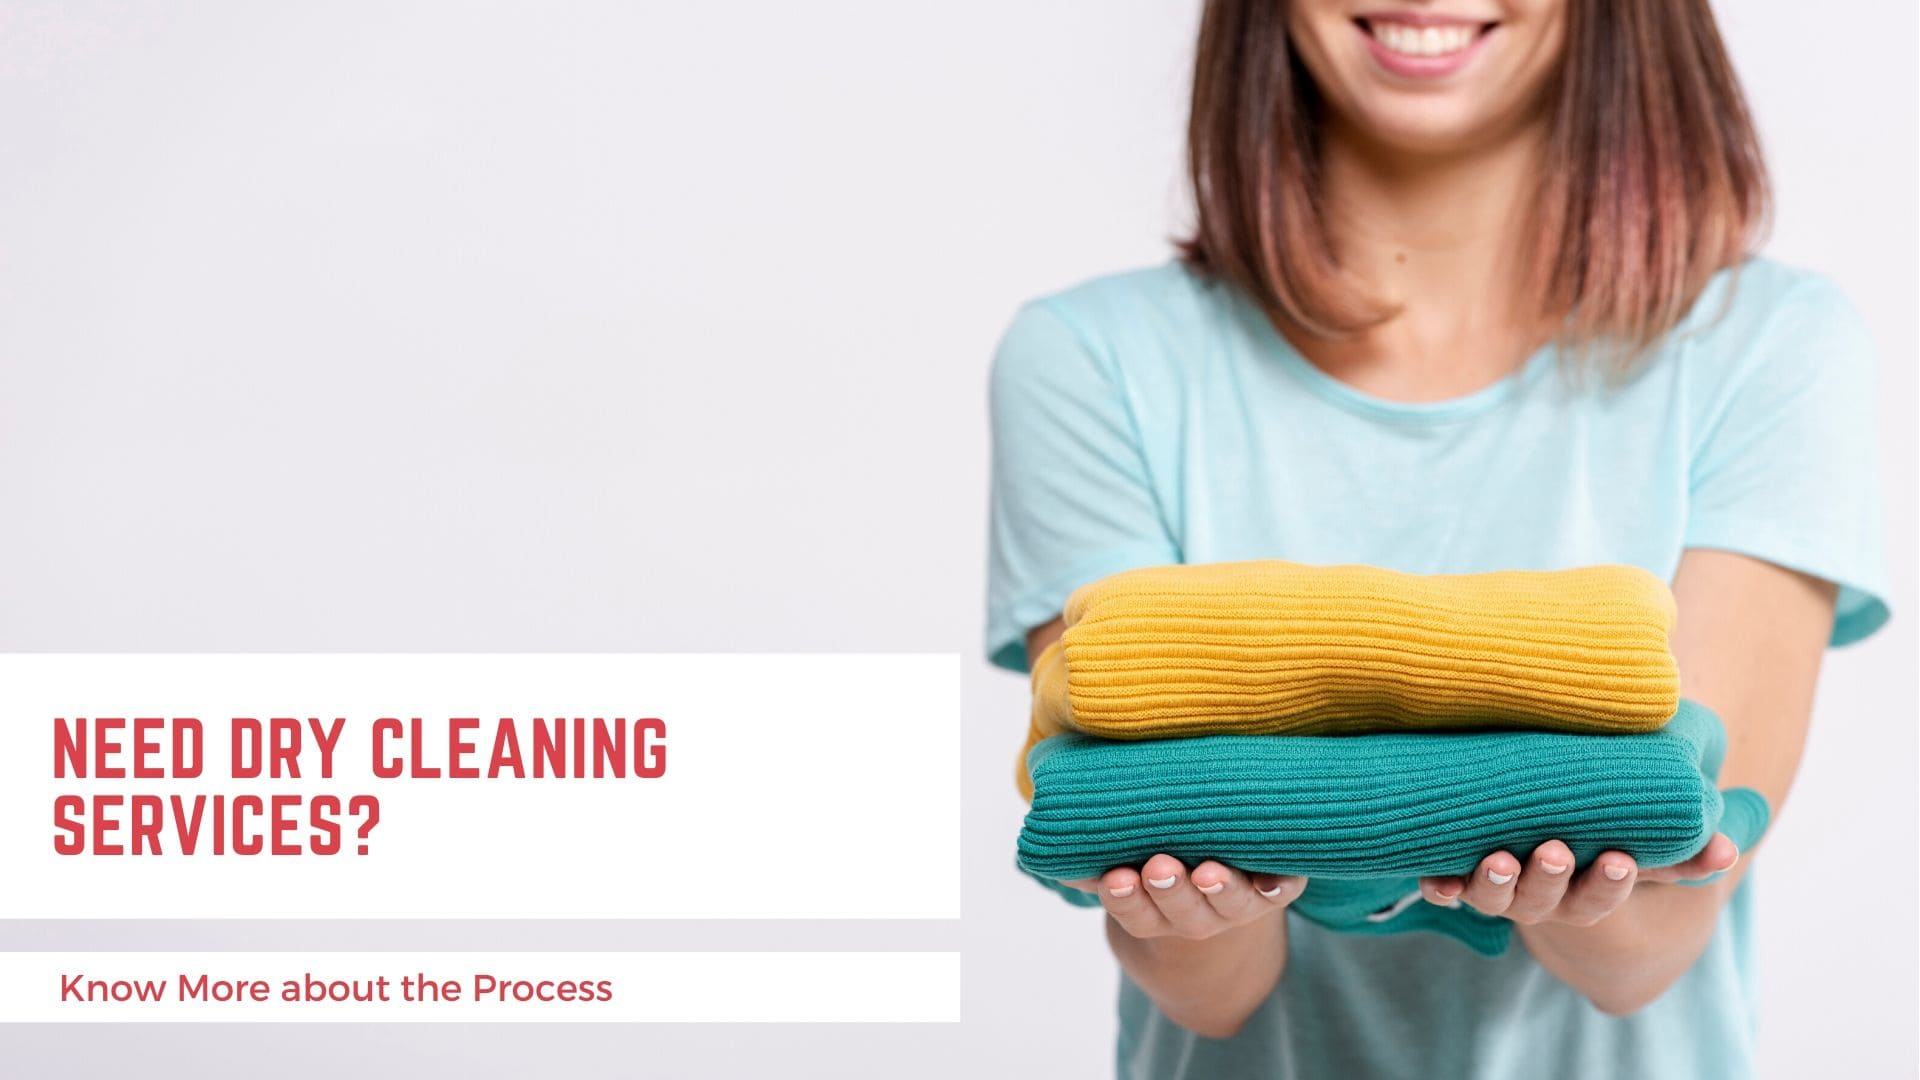 Need Dry Cleaning Services For Clothes? Know More about the Process